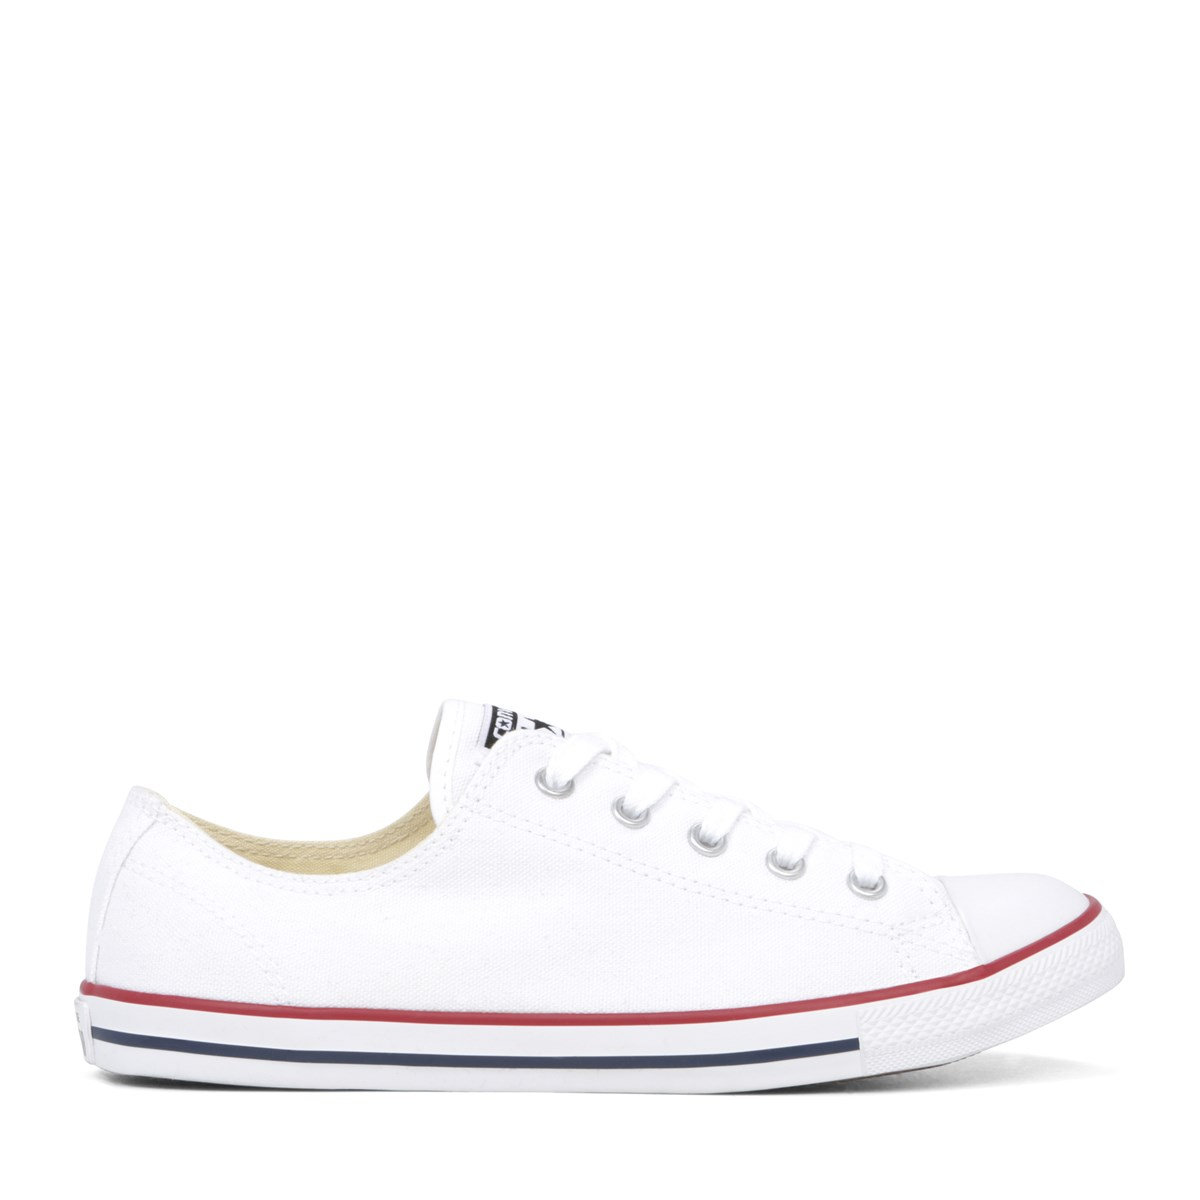 20a22b16692a Converse Womens Chuck Taylor All Star Dainty Ox Sneaker. Previous. default  view ...